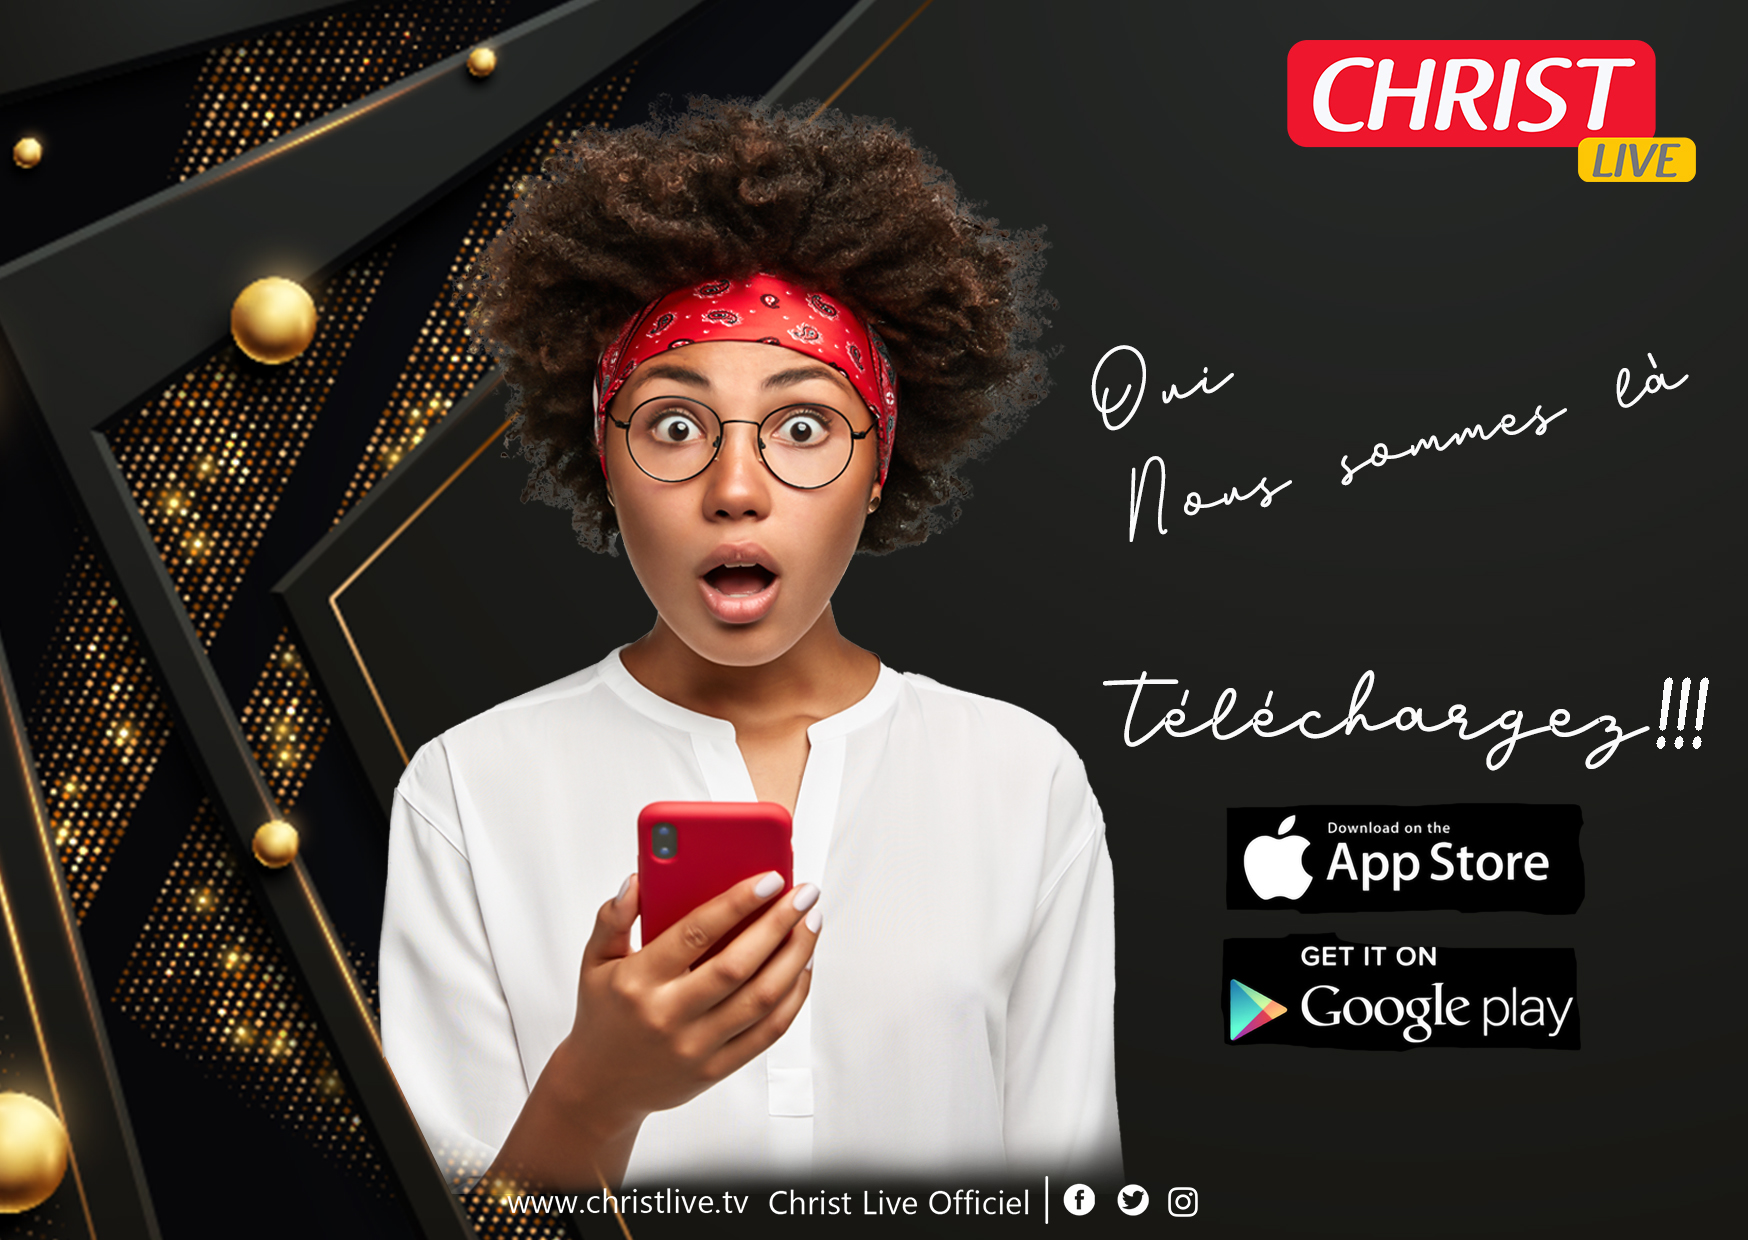 L'application Christ Live est disponible sur apple store et google play store